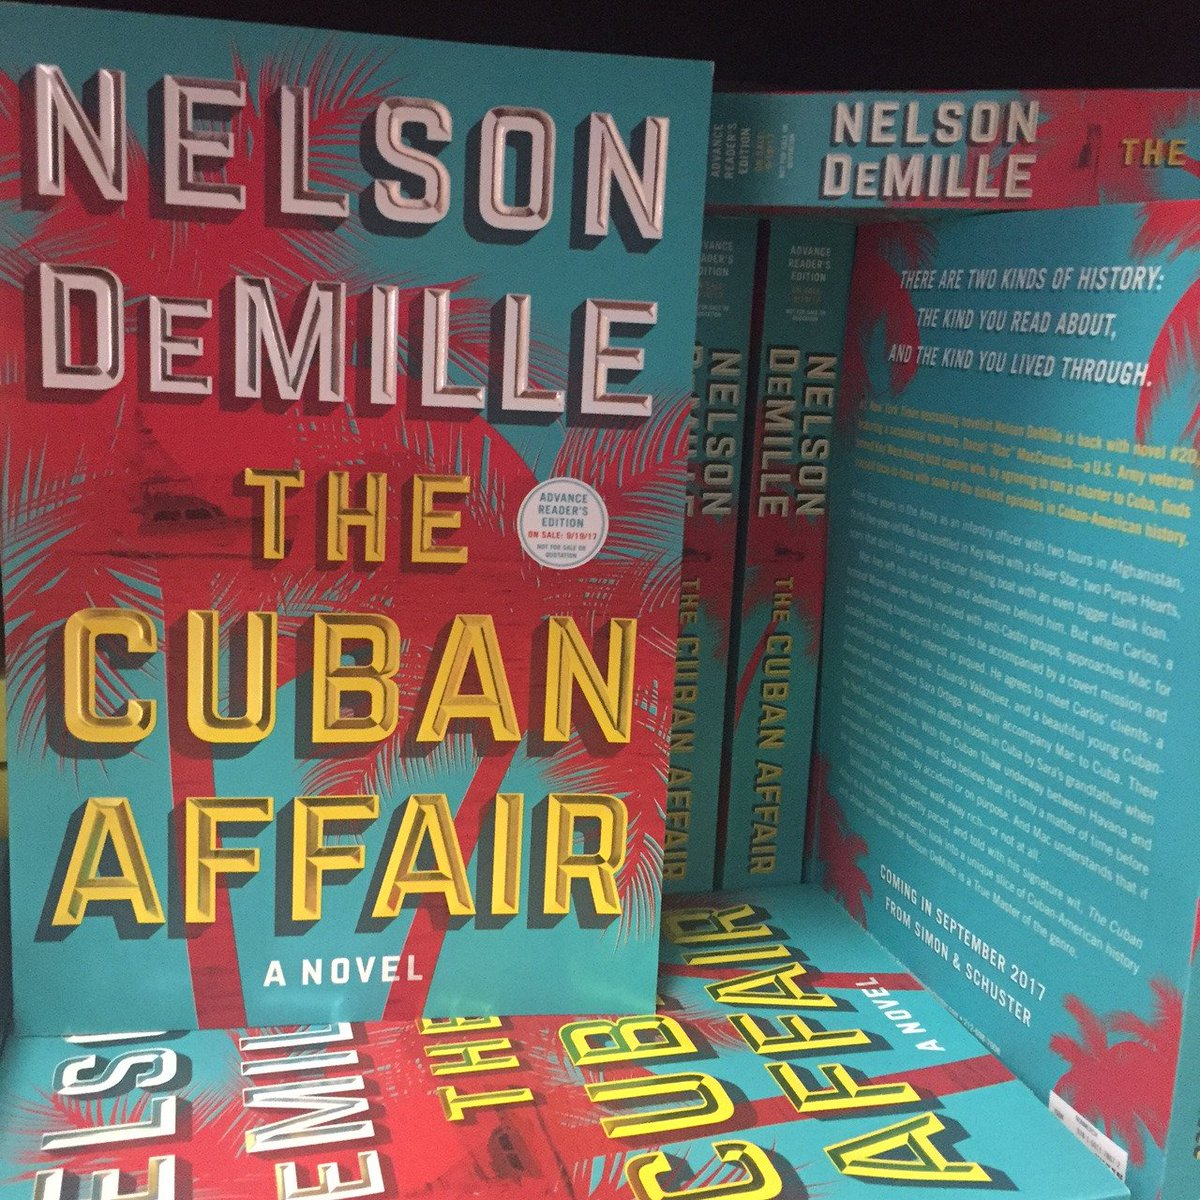 "Nelson DeMille on Twitter: ""Explore Cuba for yourself with my new novel, THE  CUBAN AFFAIR coming this Fall. Pre-order today: https://t.co/EKsNhAfGD8."